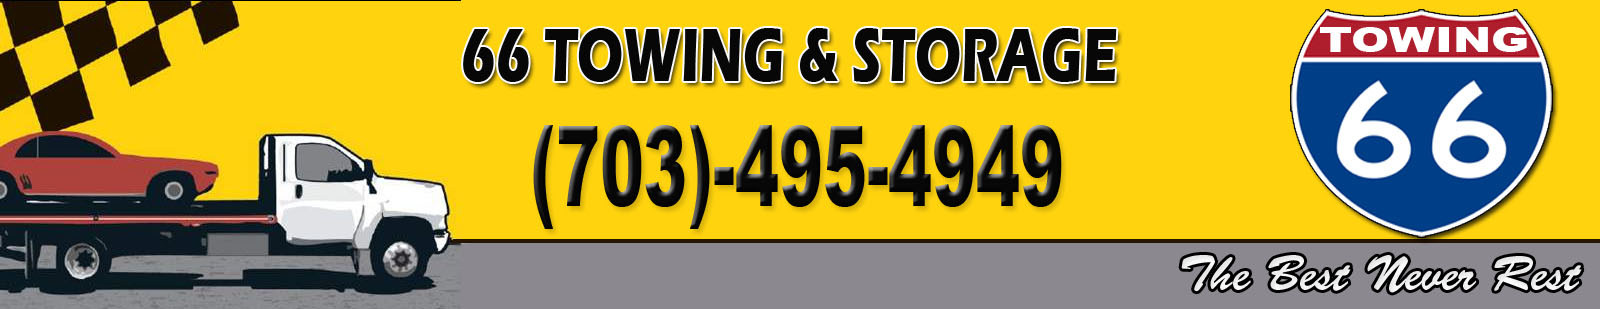 66 Towing Recovery Storage Arlington 22213